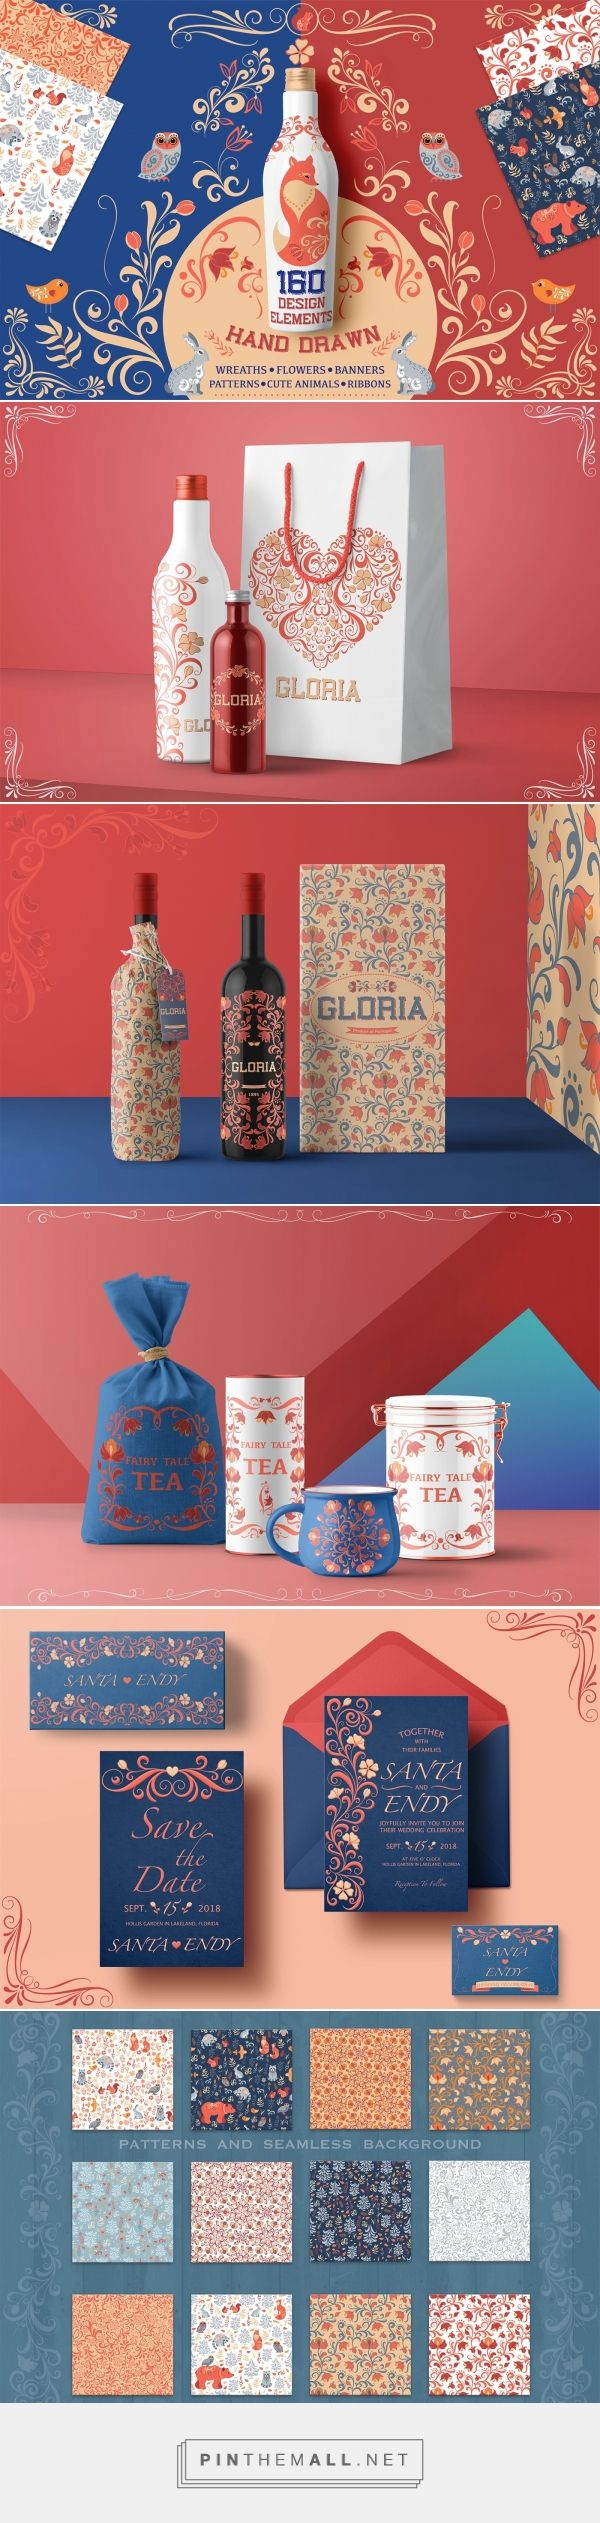 These are simply beautiful. 160+ Hand Drawn Vector Elements by Irina Skaska. Source: Behance. Pin curated by #SFields99. #packaging #design #inspiration #ideas #creative #product #texture #pattern #bottle #bag #tub #jar #stationary # - created via https://pinthemall.net